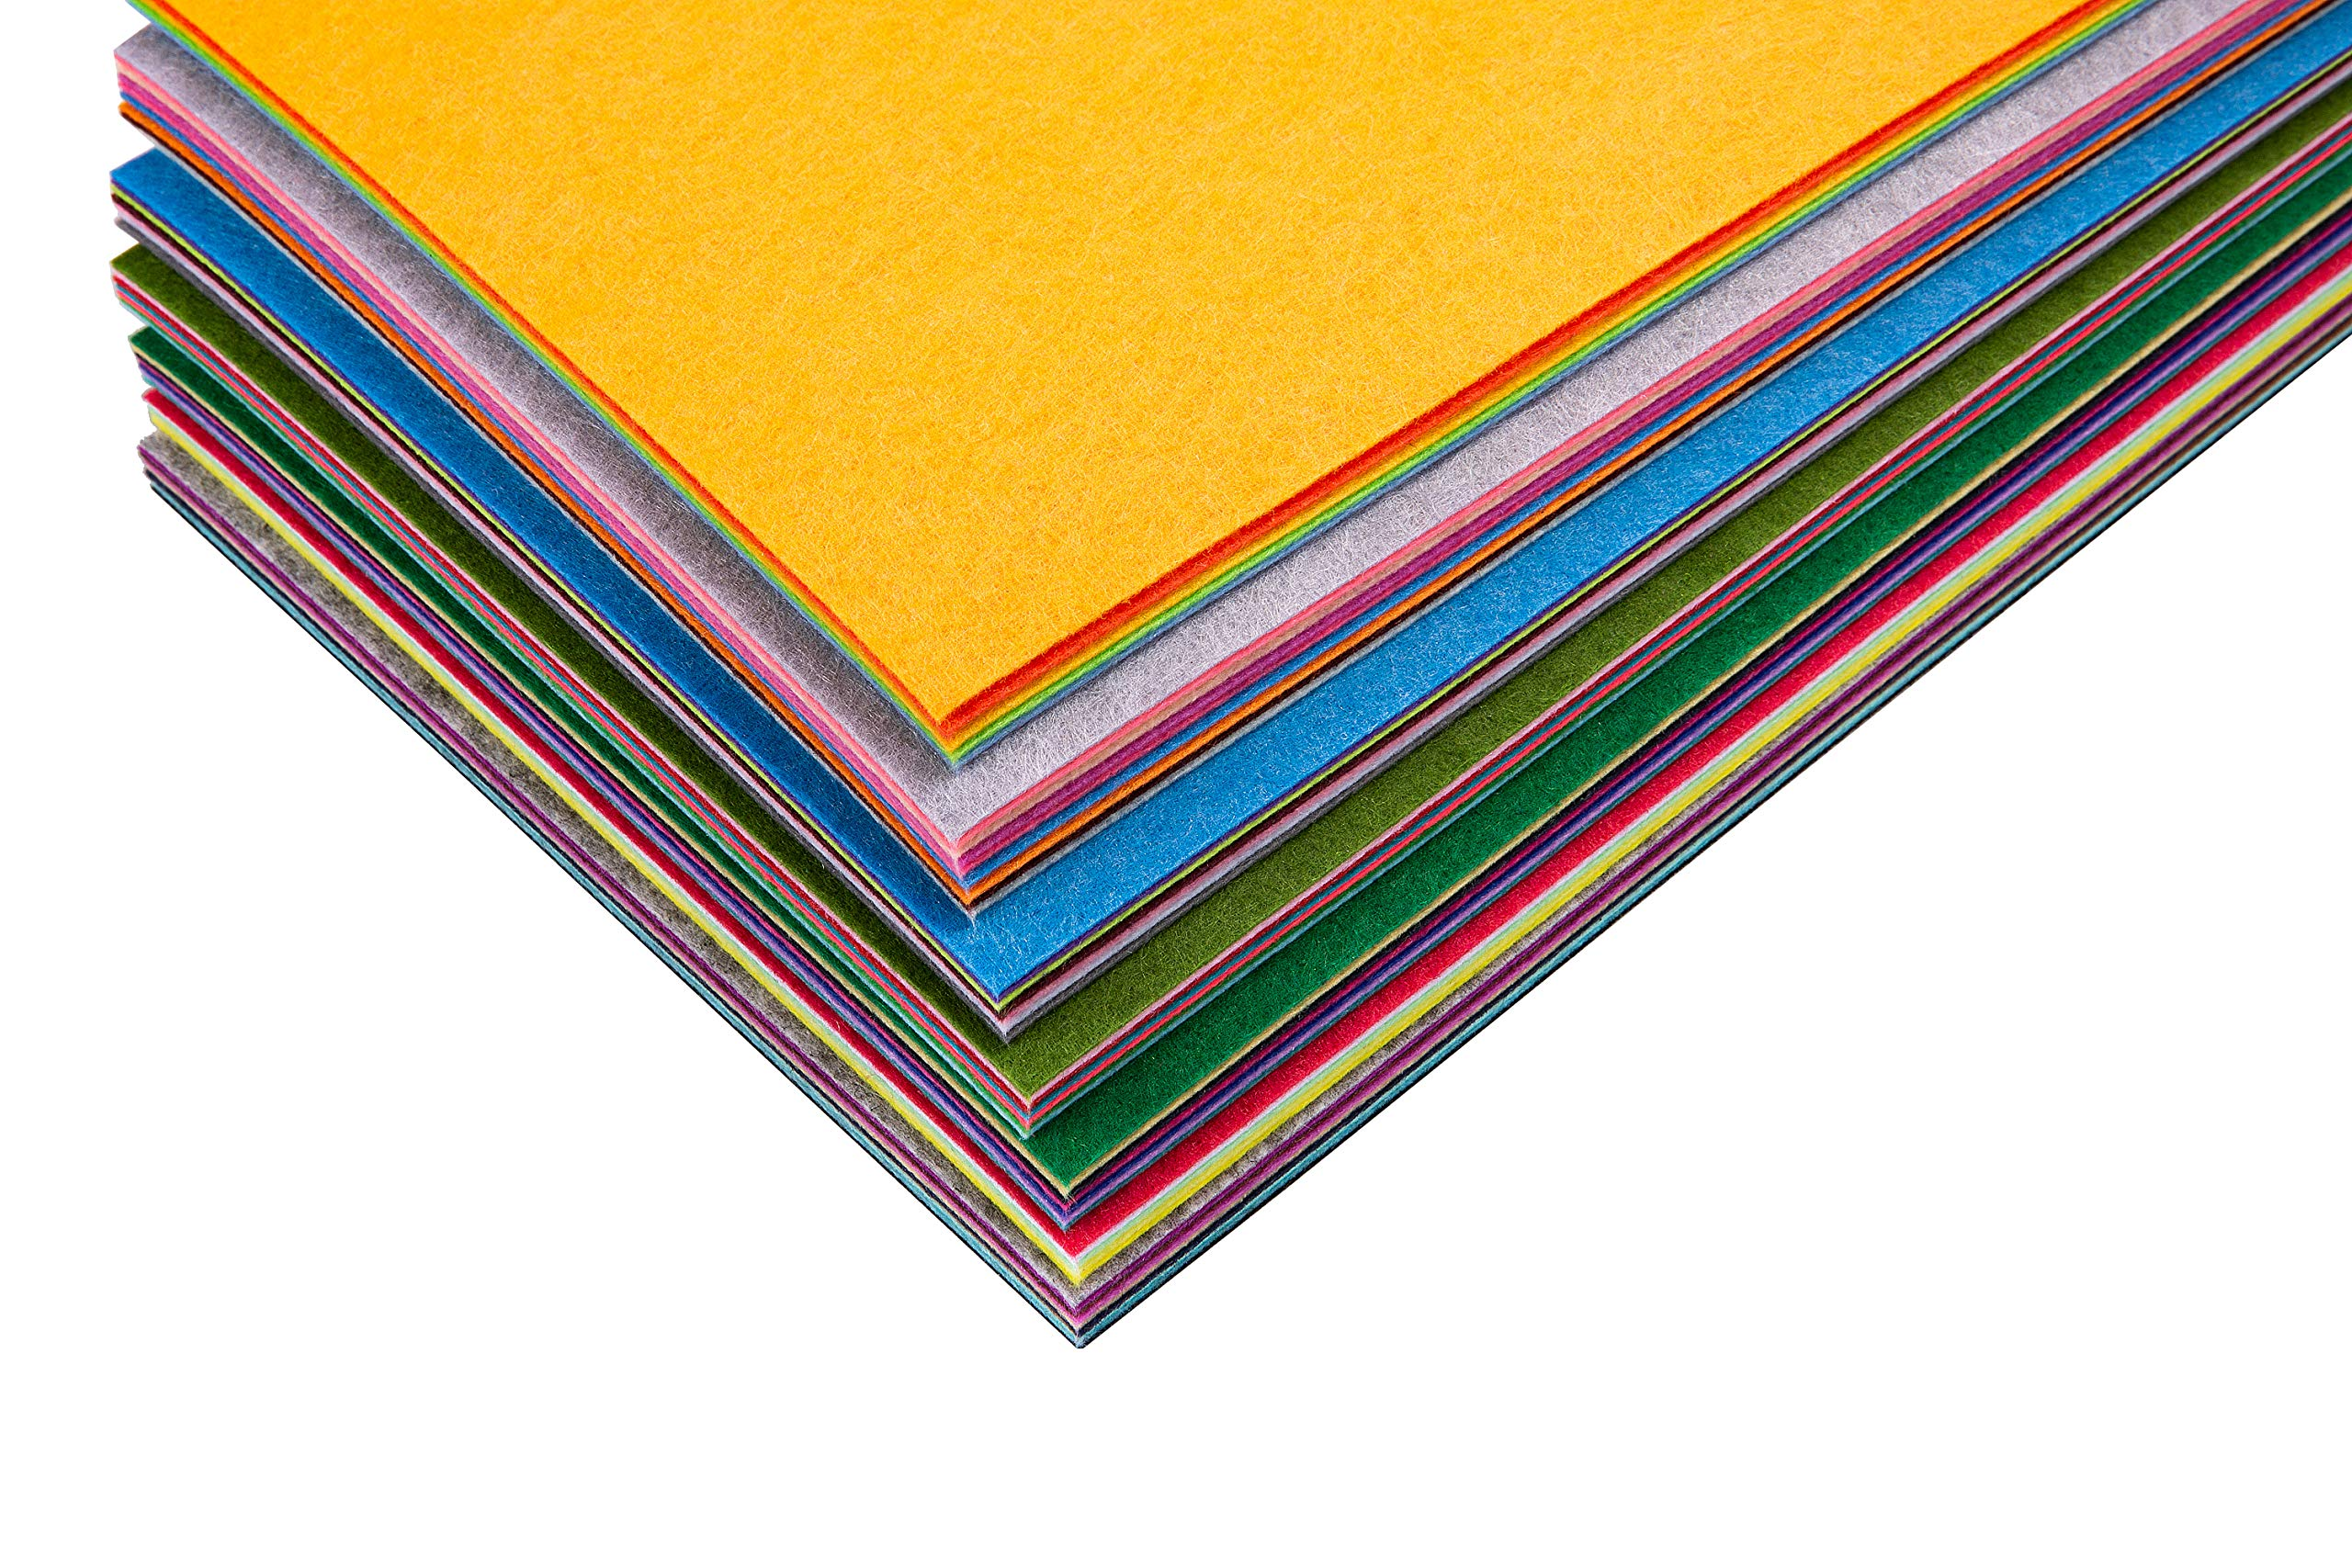 Assorted Stiff Felt Fabric Set: 50 Unique Sheets 8x12 inch (20x30cm) with Handy Storage Container Case; DIY Crafts, Sewing, Decorative Projects by Cycero (Image #5)